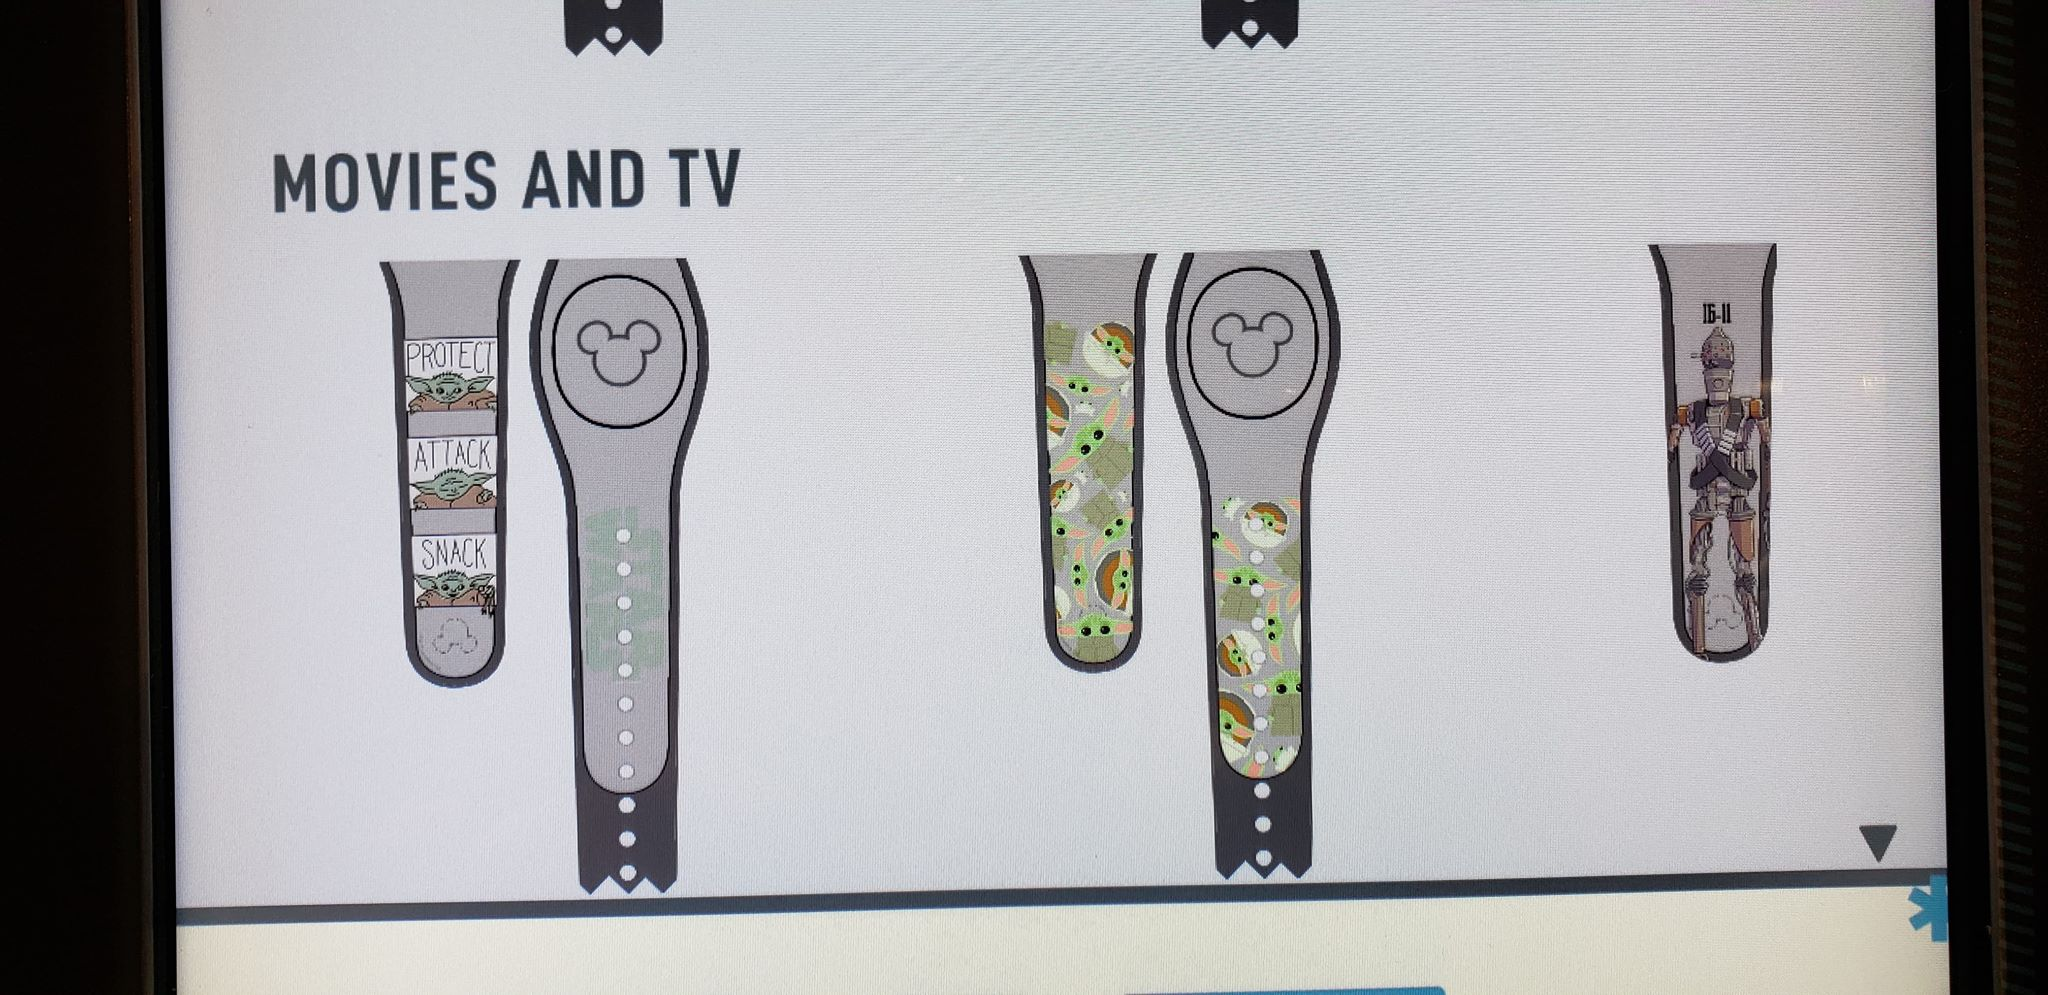 New Baby Yoda MagicBands, Phone Cases, And Magnets At D-Tech 2